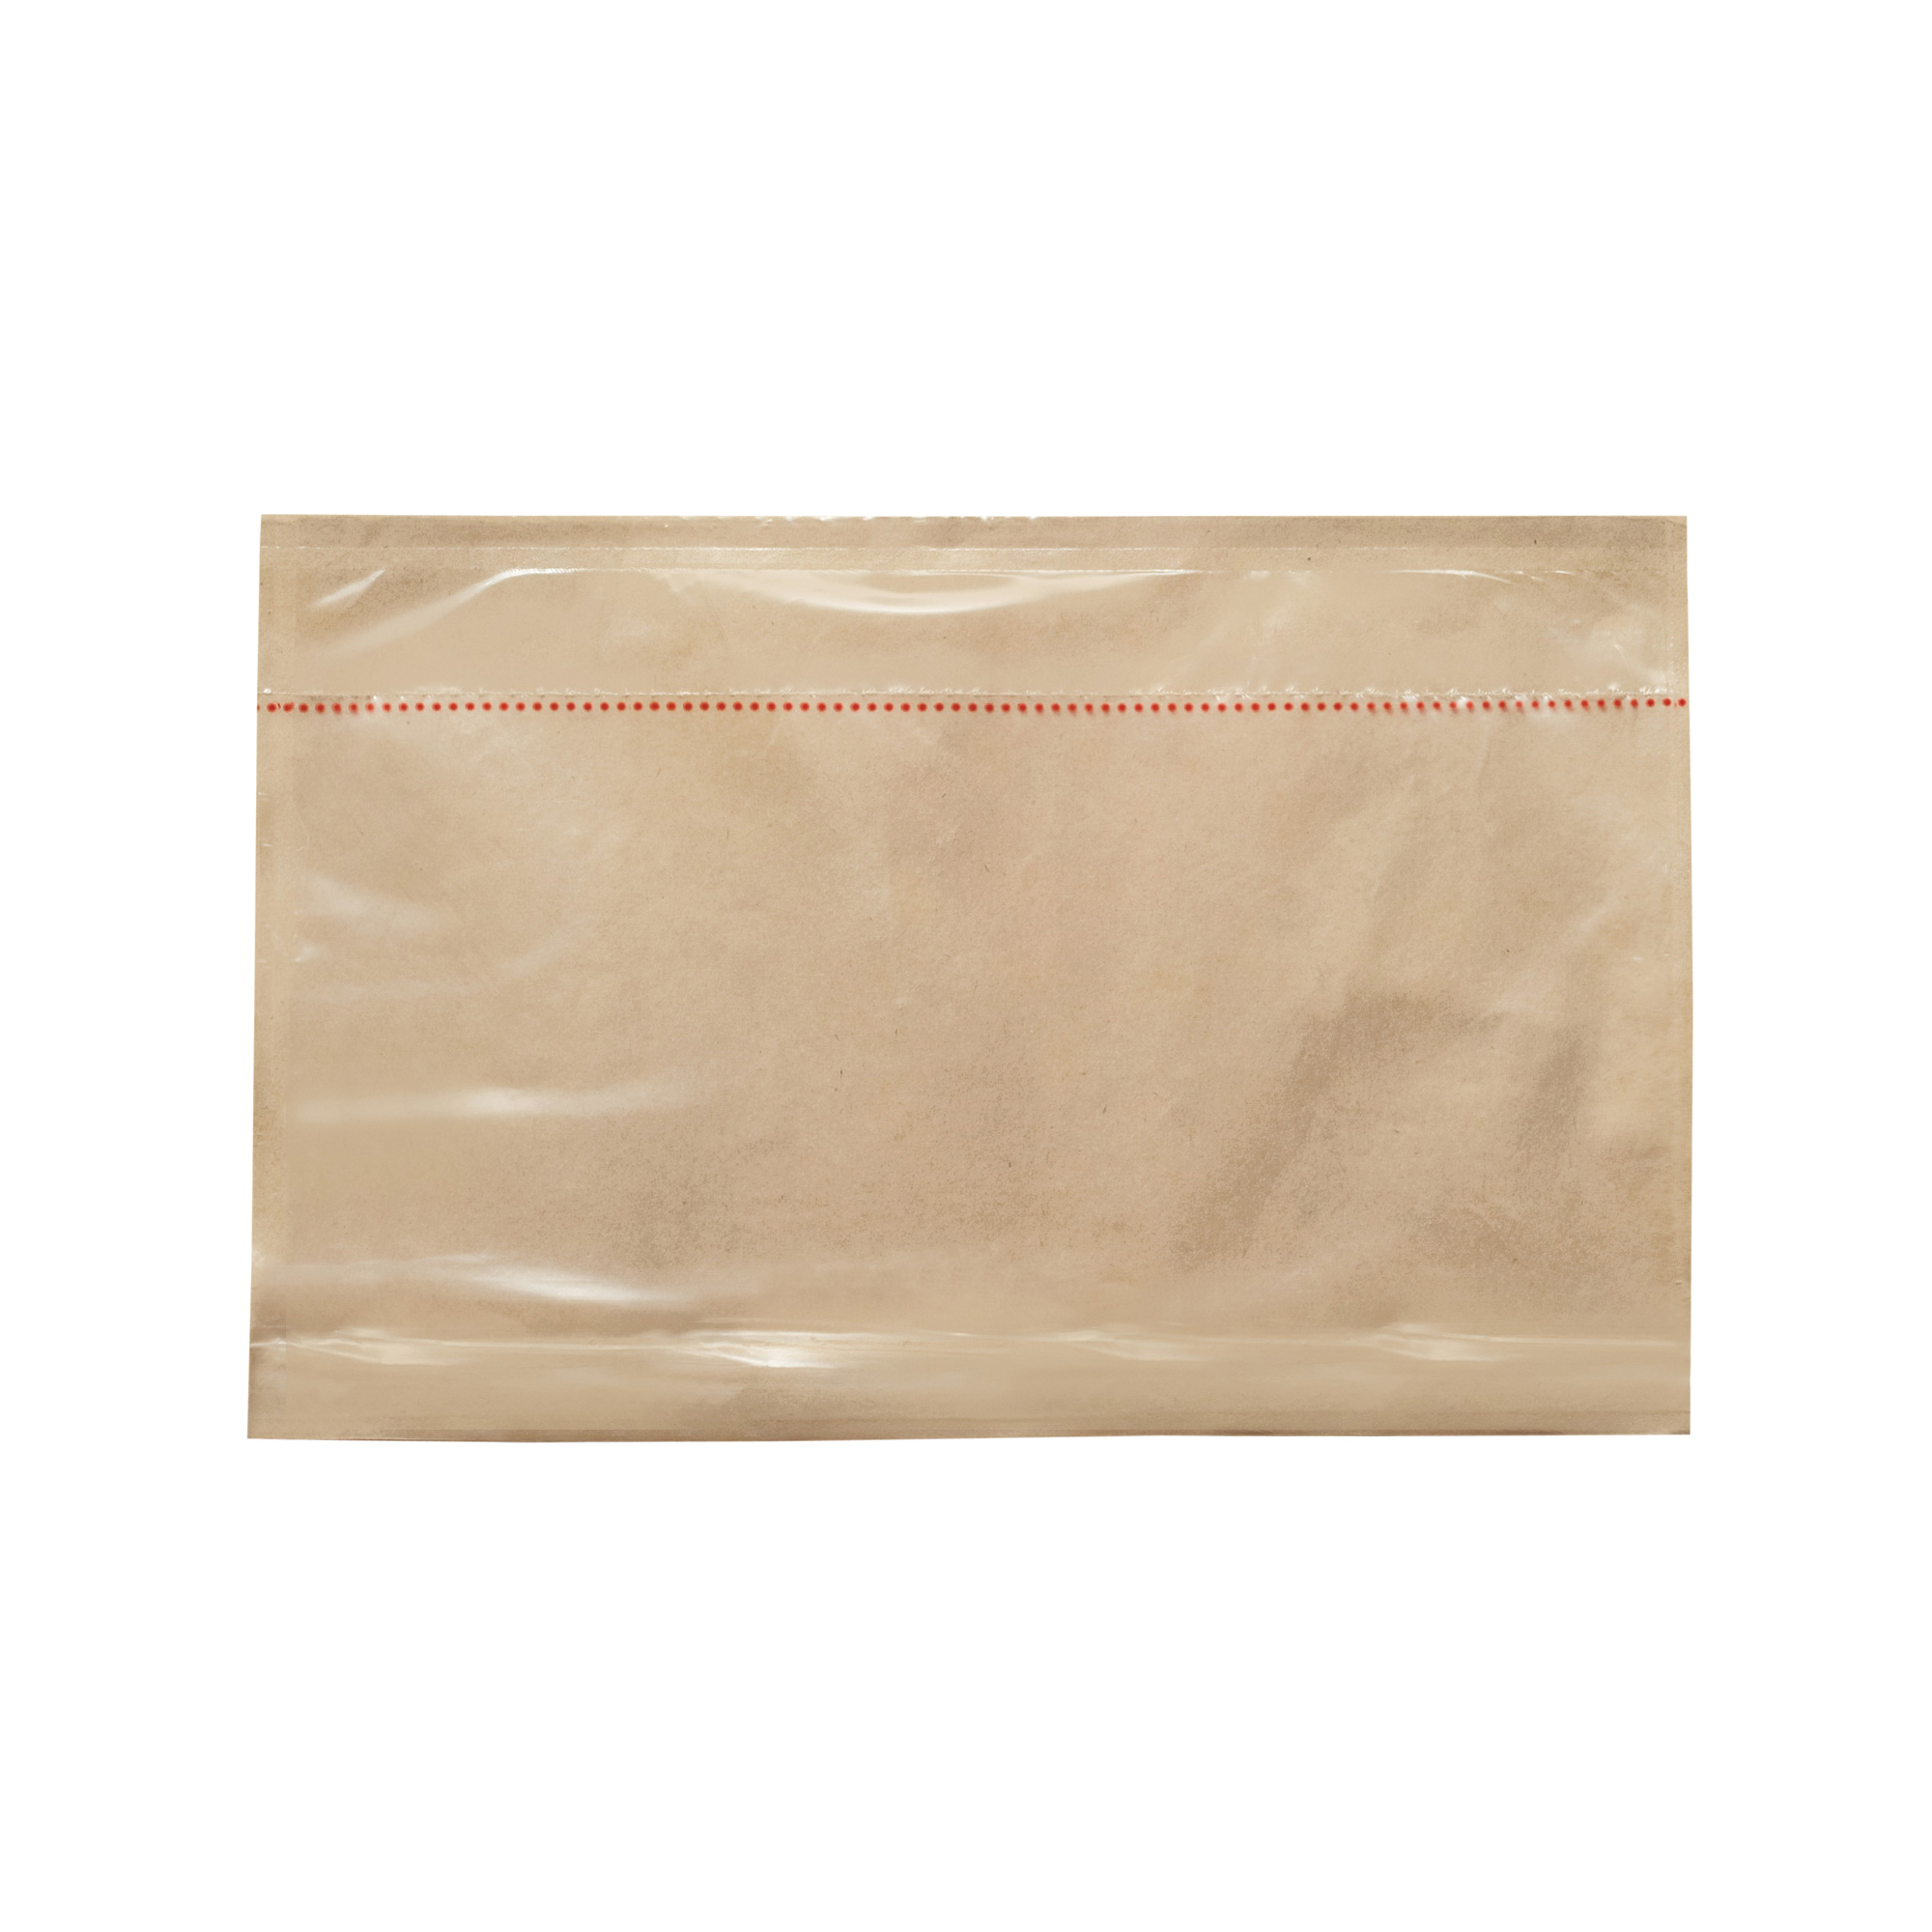 3M™ 021200-73777 Non-Printed Perforated Packing List Envelope, 10-3/4 in L x 6-3/4 in W, Polyethylene Film Backing, Clear